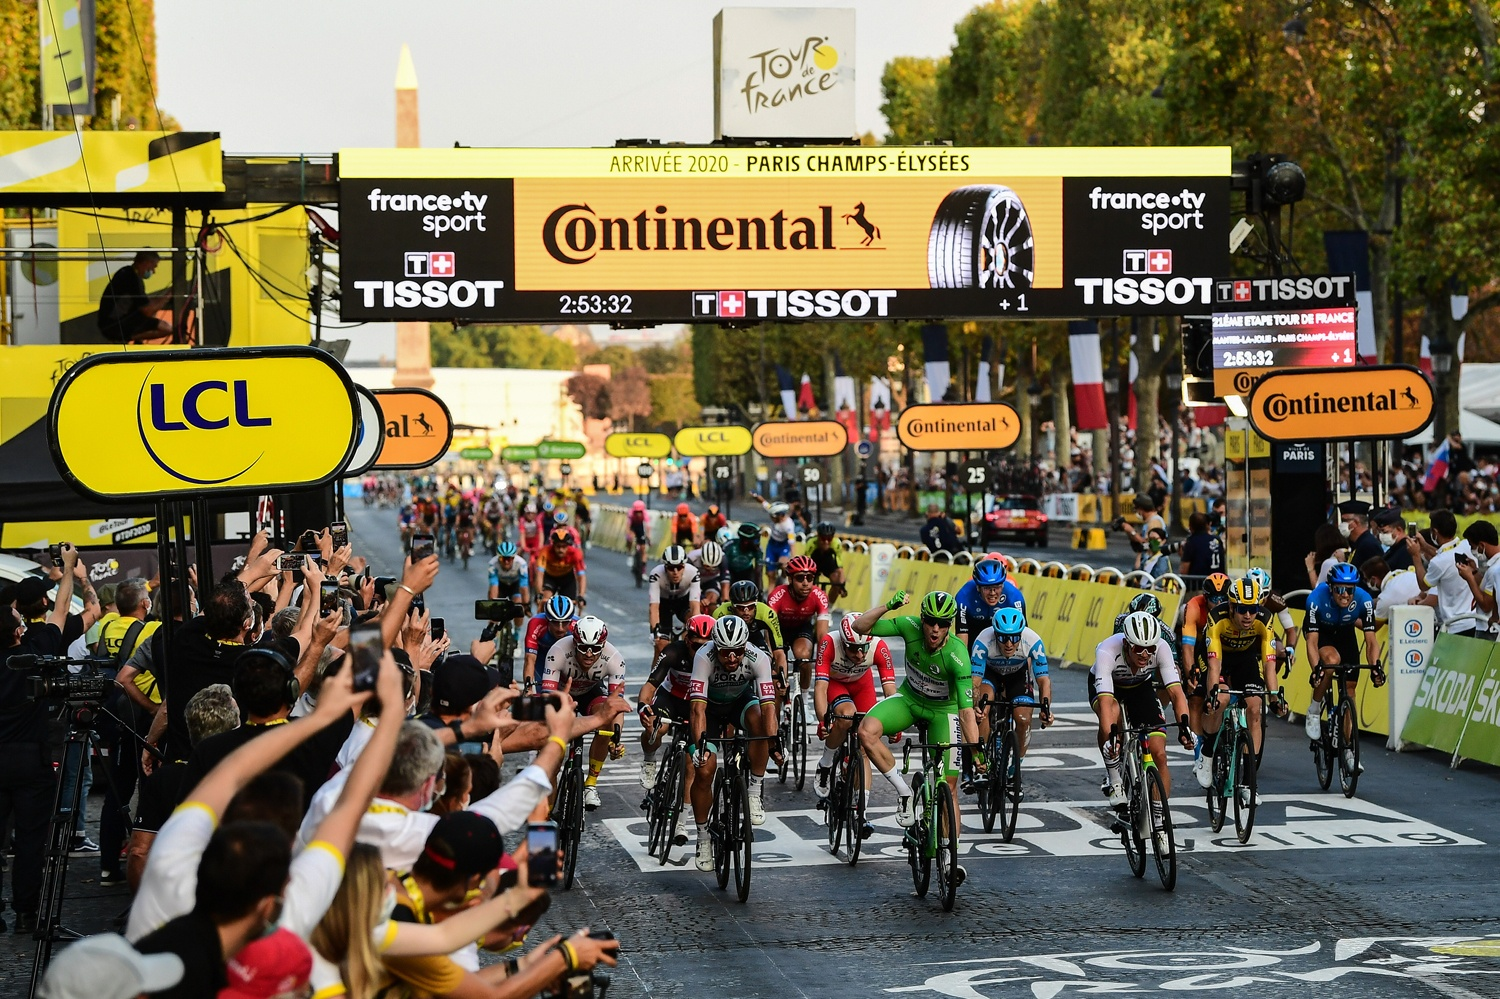 Tour de France 2020 Highlights More Sporting Success for Continental